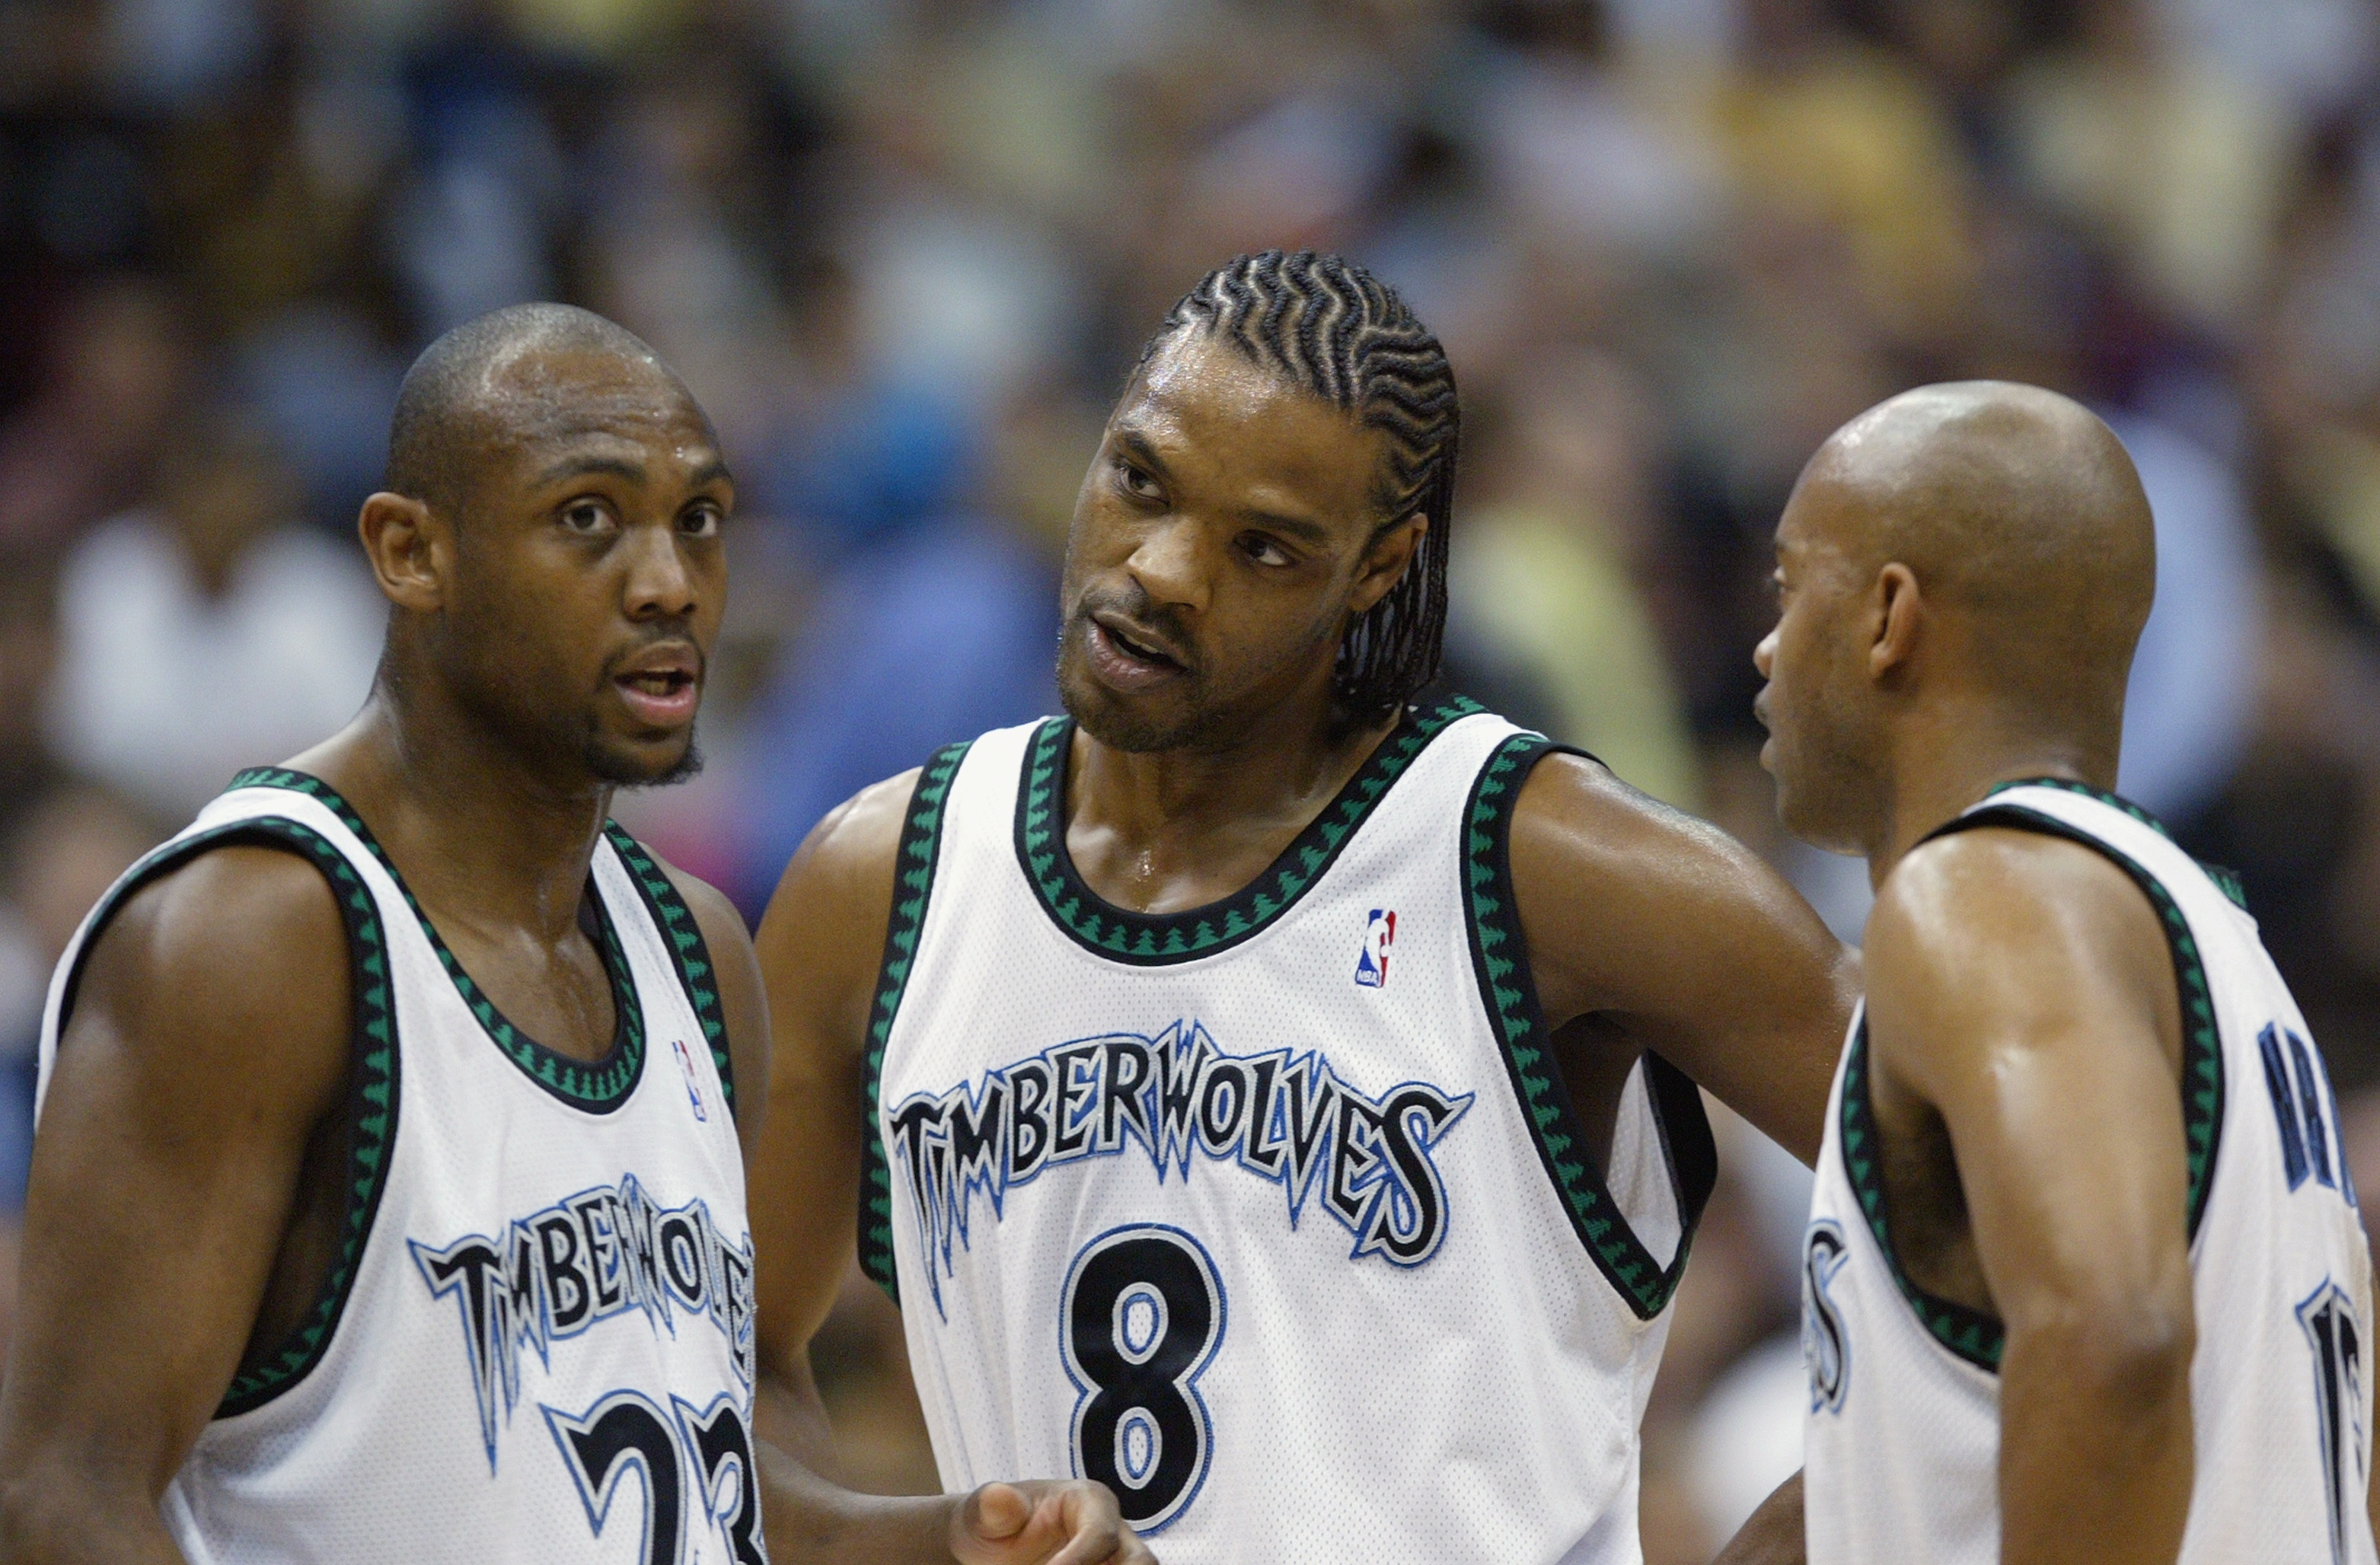 Former NBA Player Latrell Sprewell Laughed at $21 Million and Went Broke Shortly After